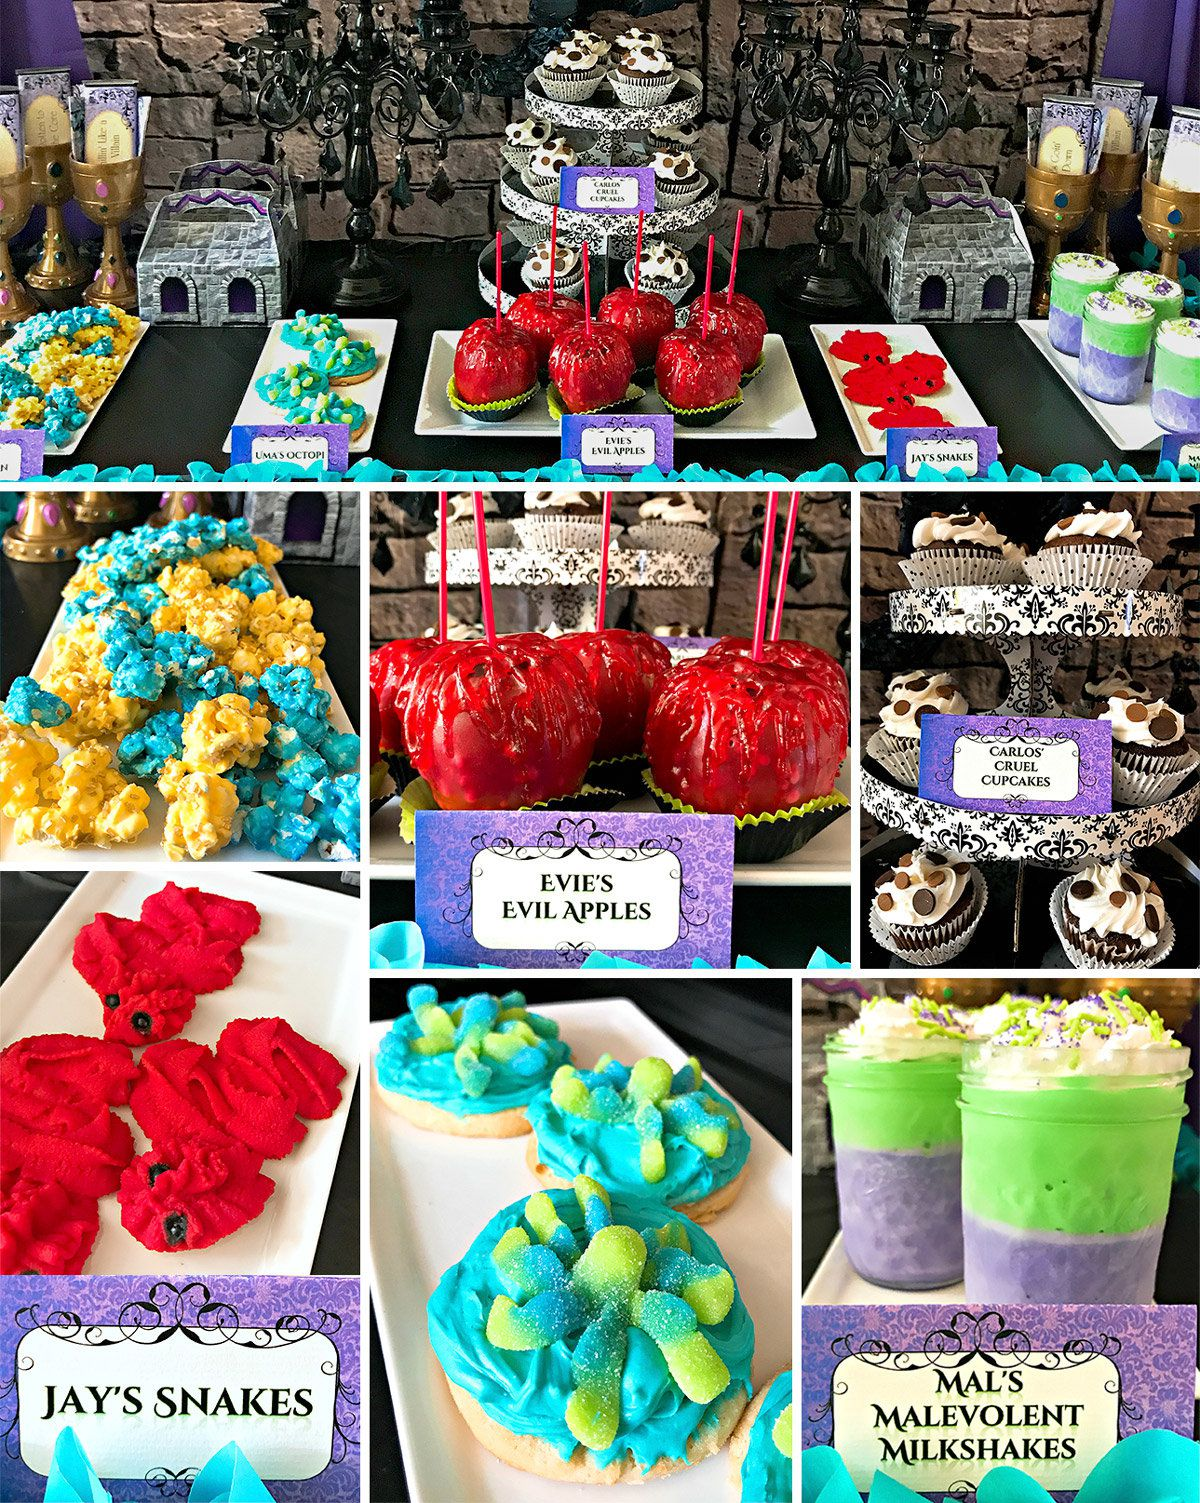 Descendants Birthday Party Ideas - Food